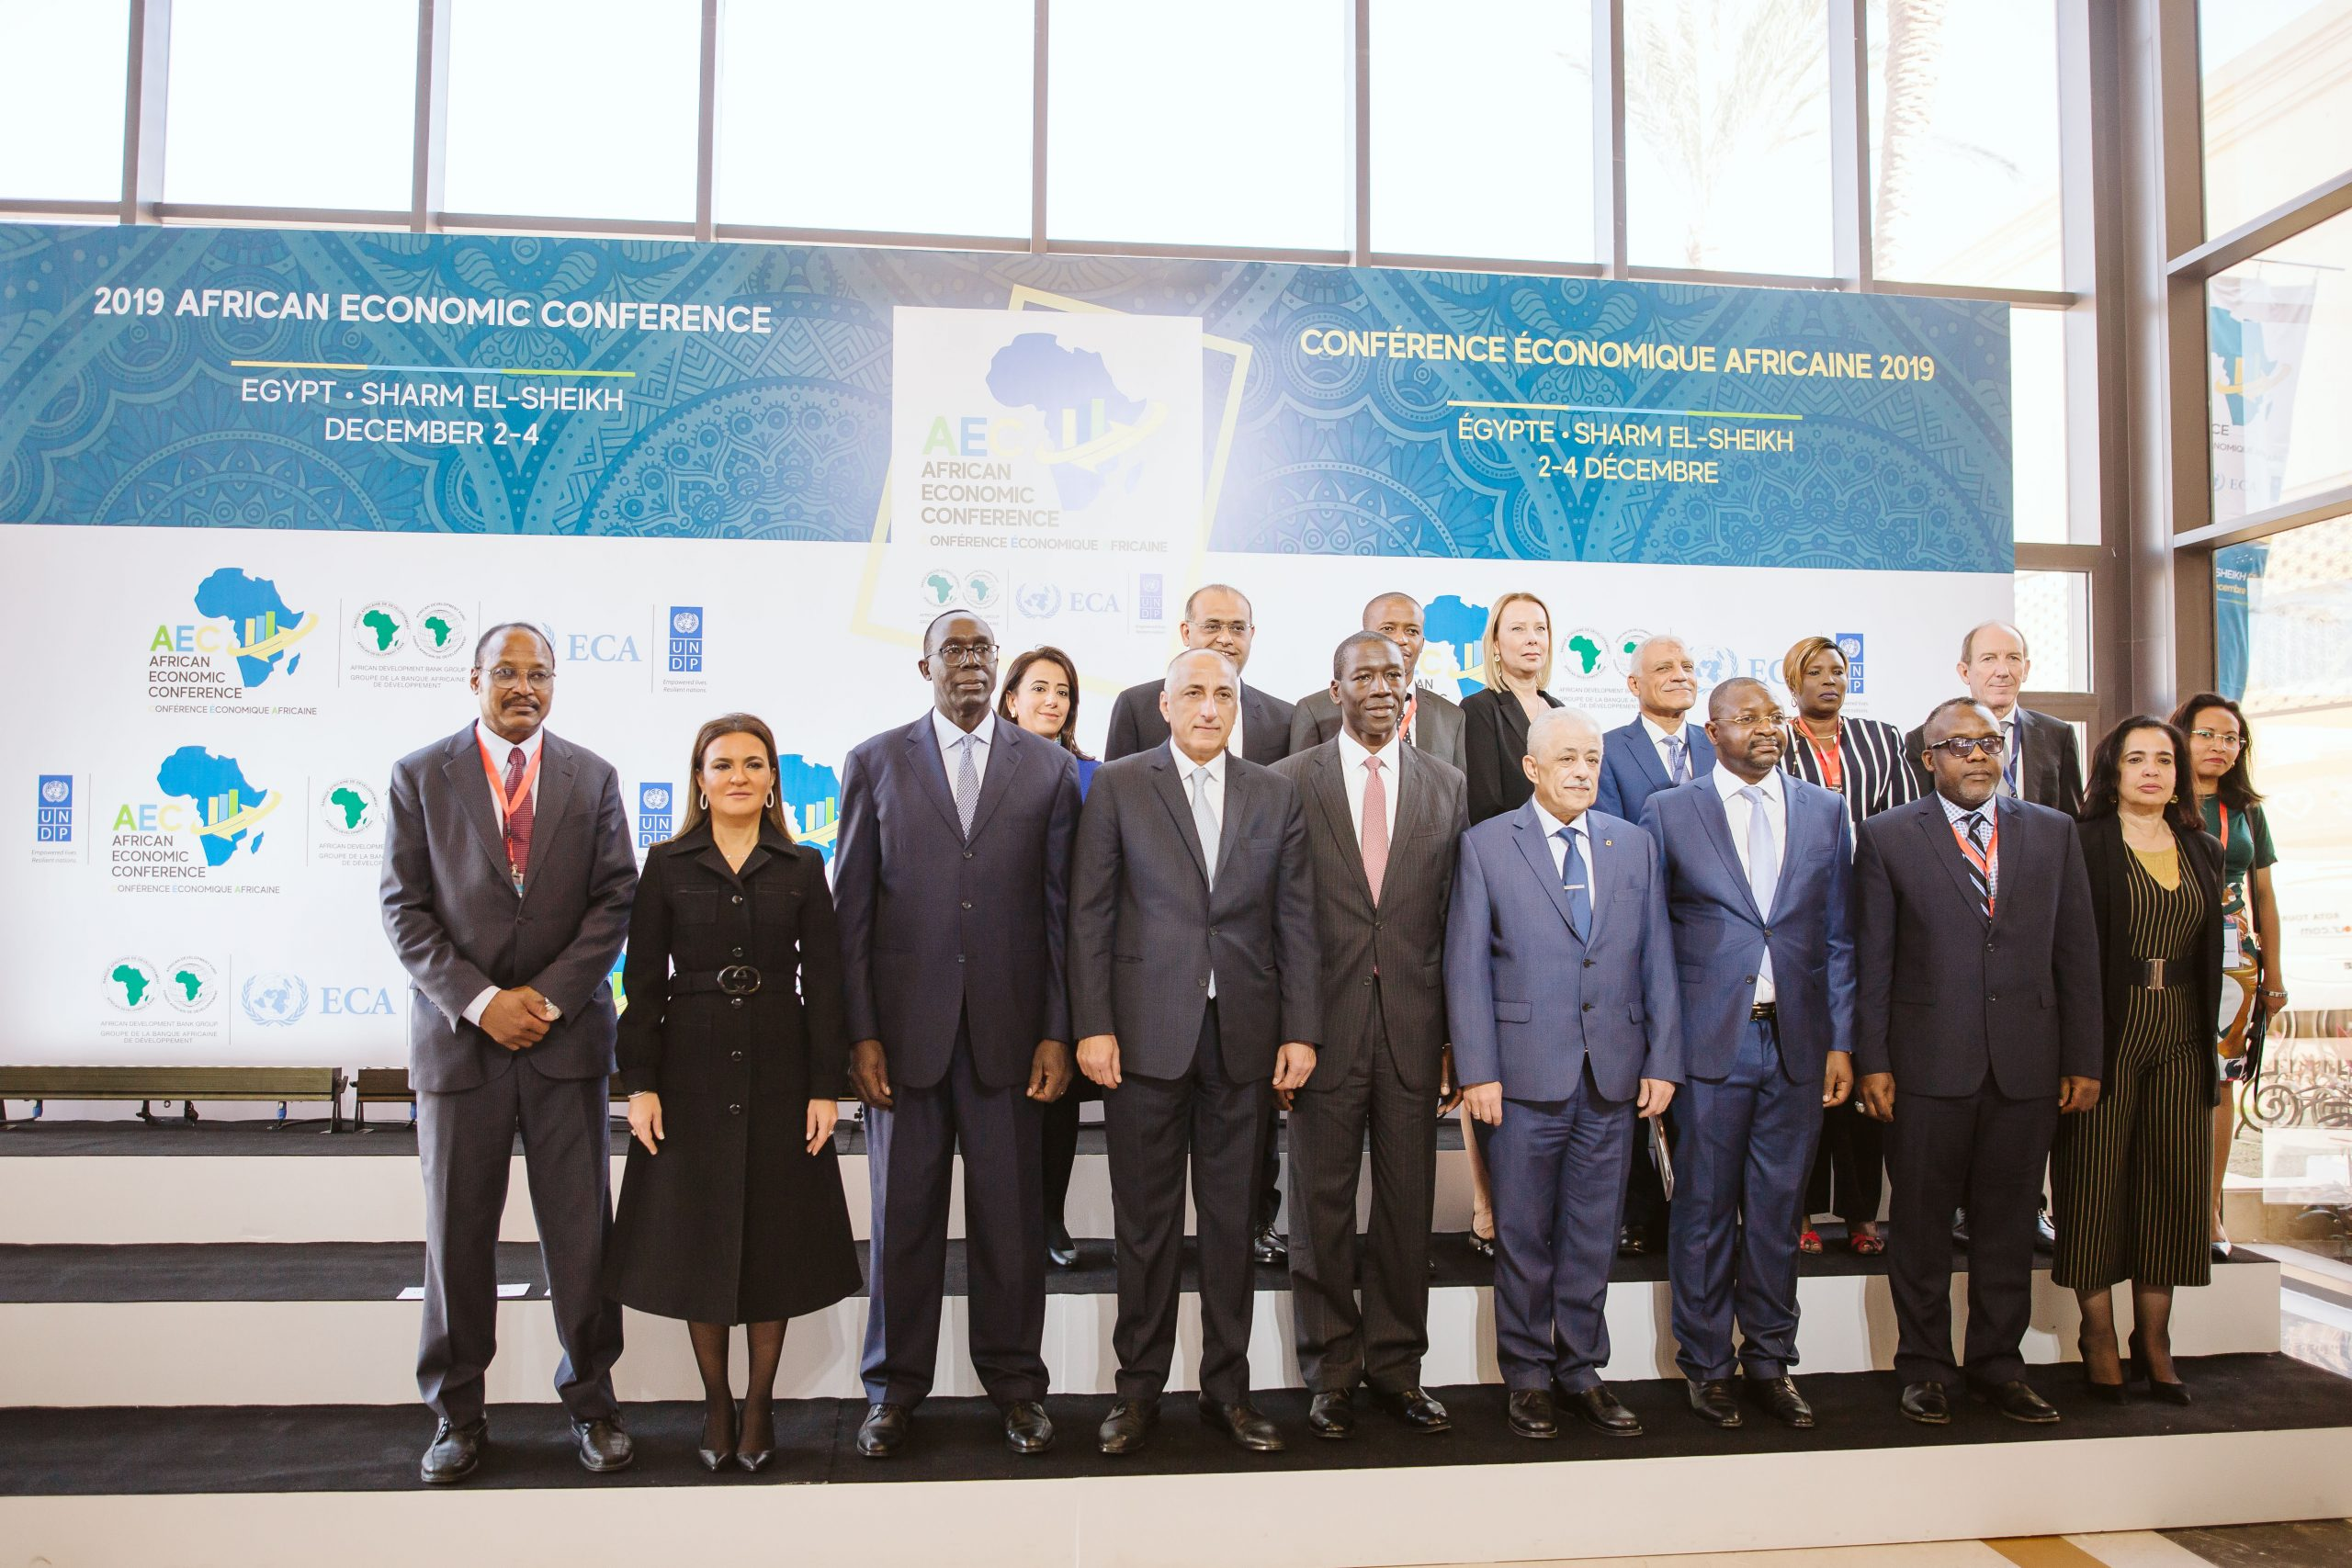 Youth Welfare Leads as 2019 African Economic Conference Opens in Egypt